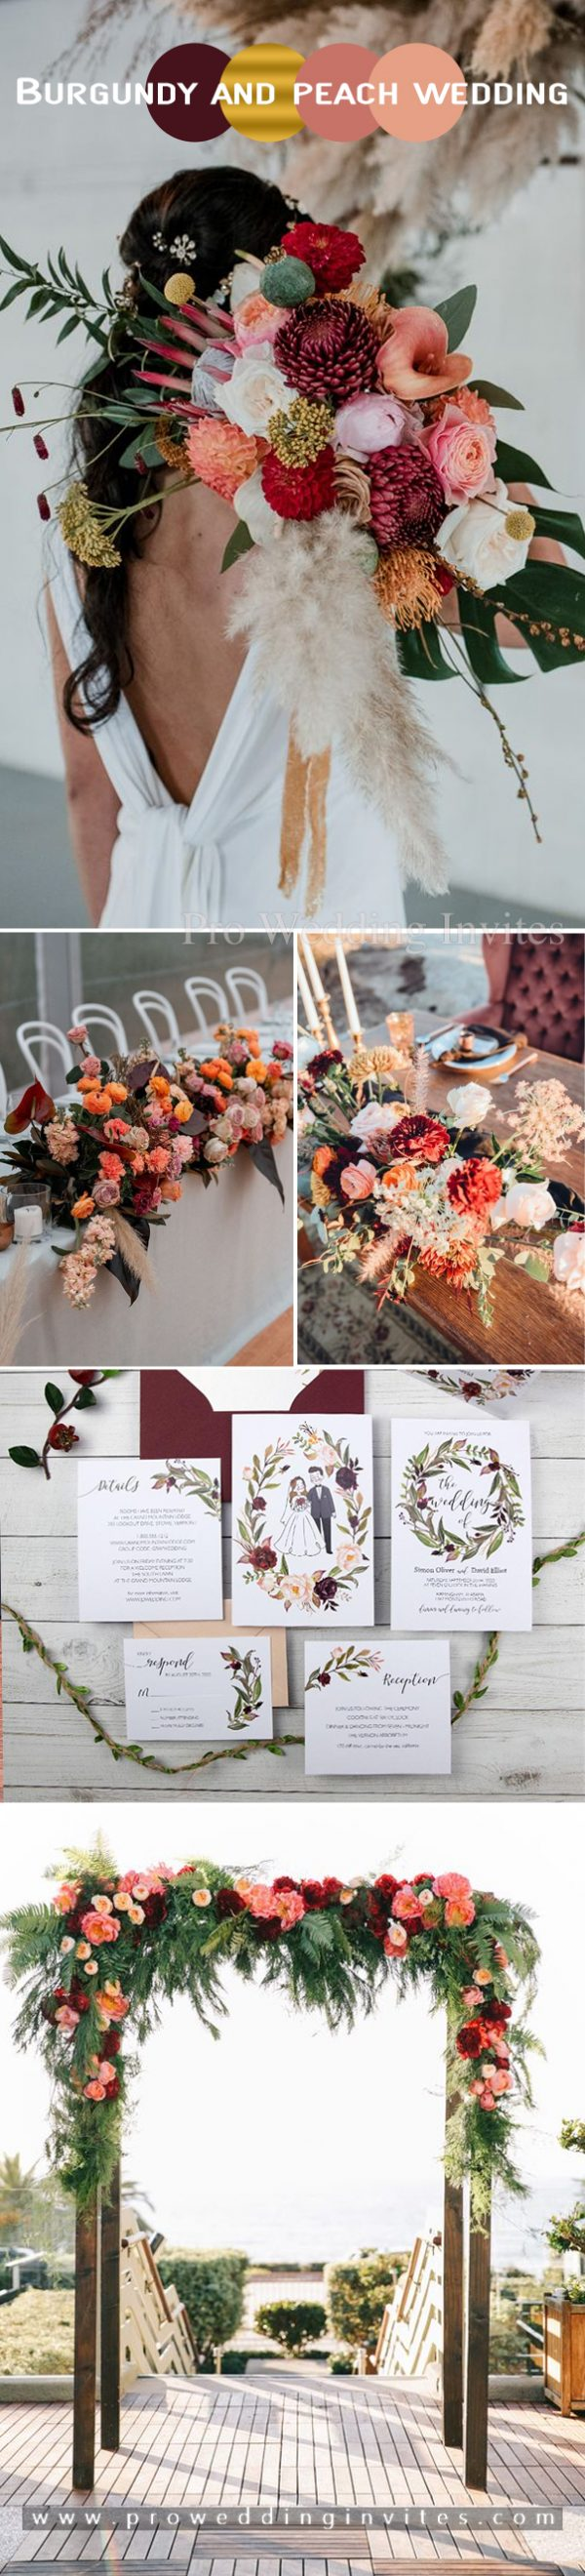 Burgundy and peach with gold accents wedding